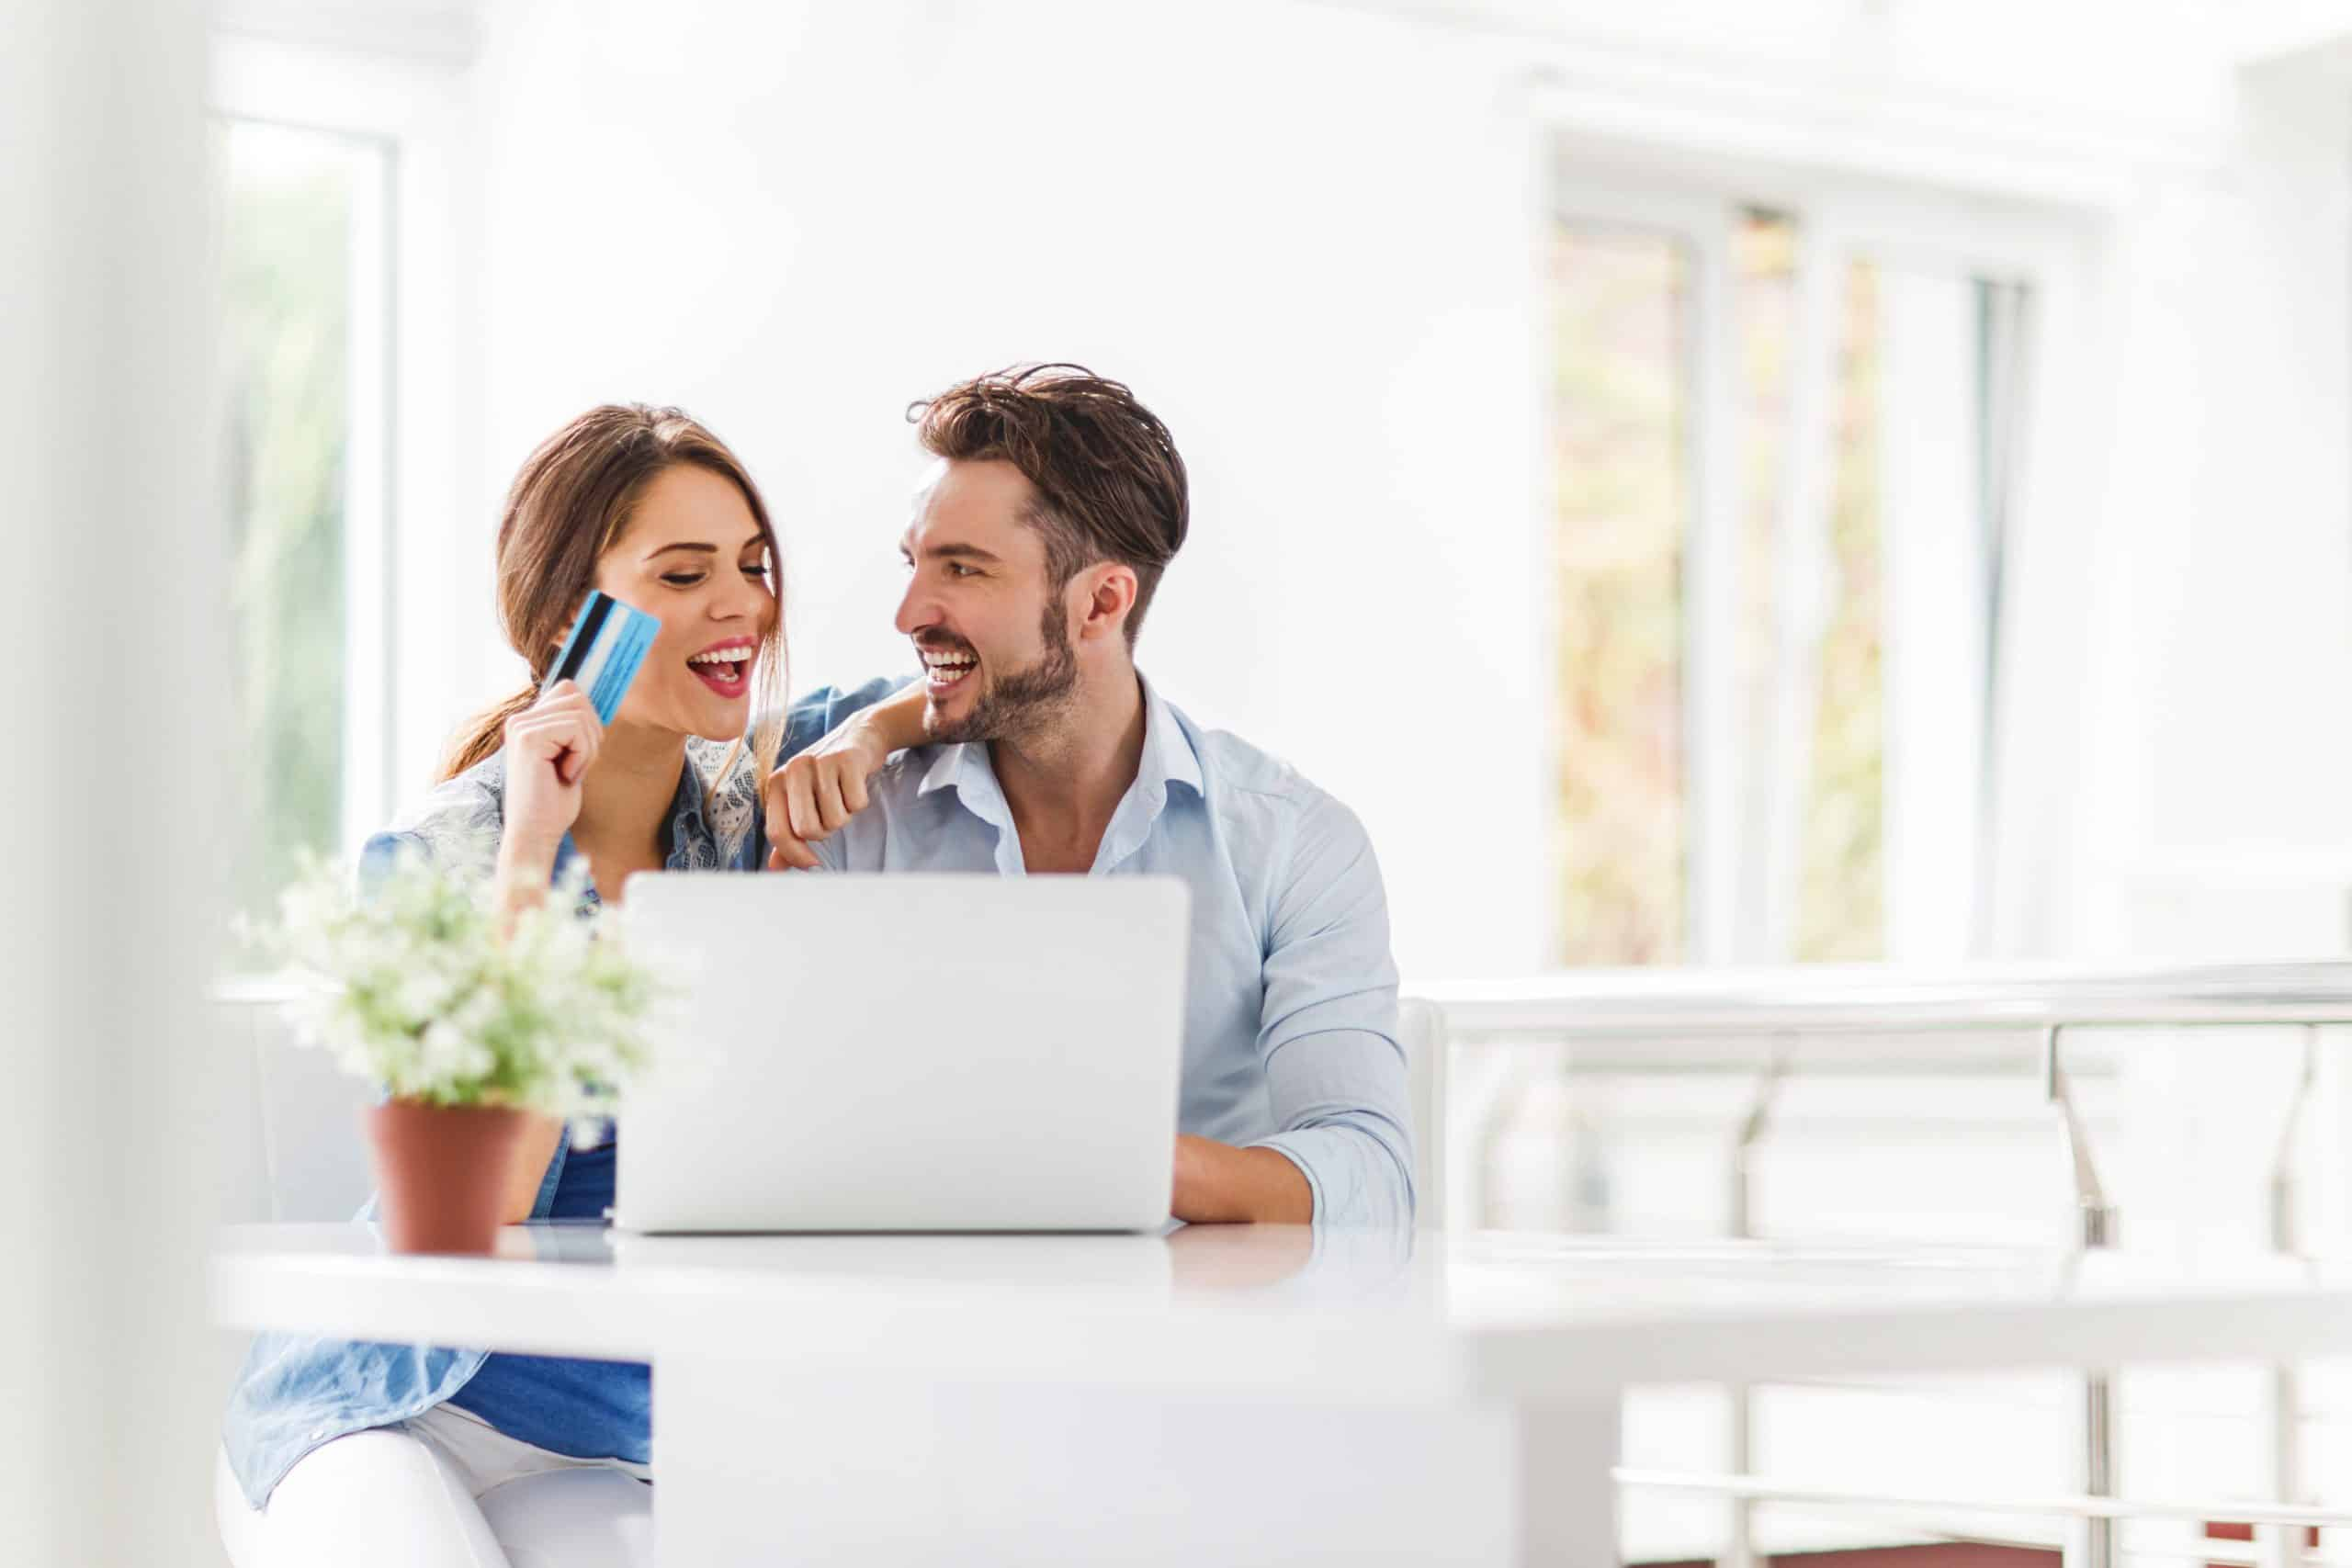 b4 Rebrands for a fresh look in 2020